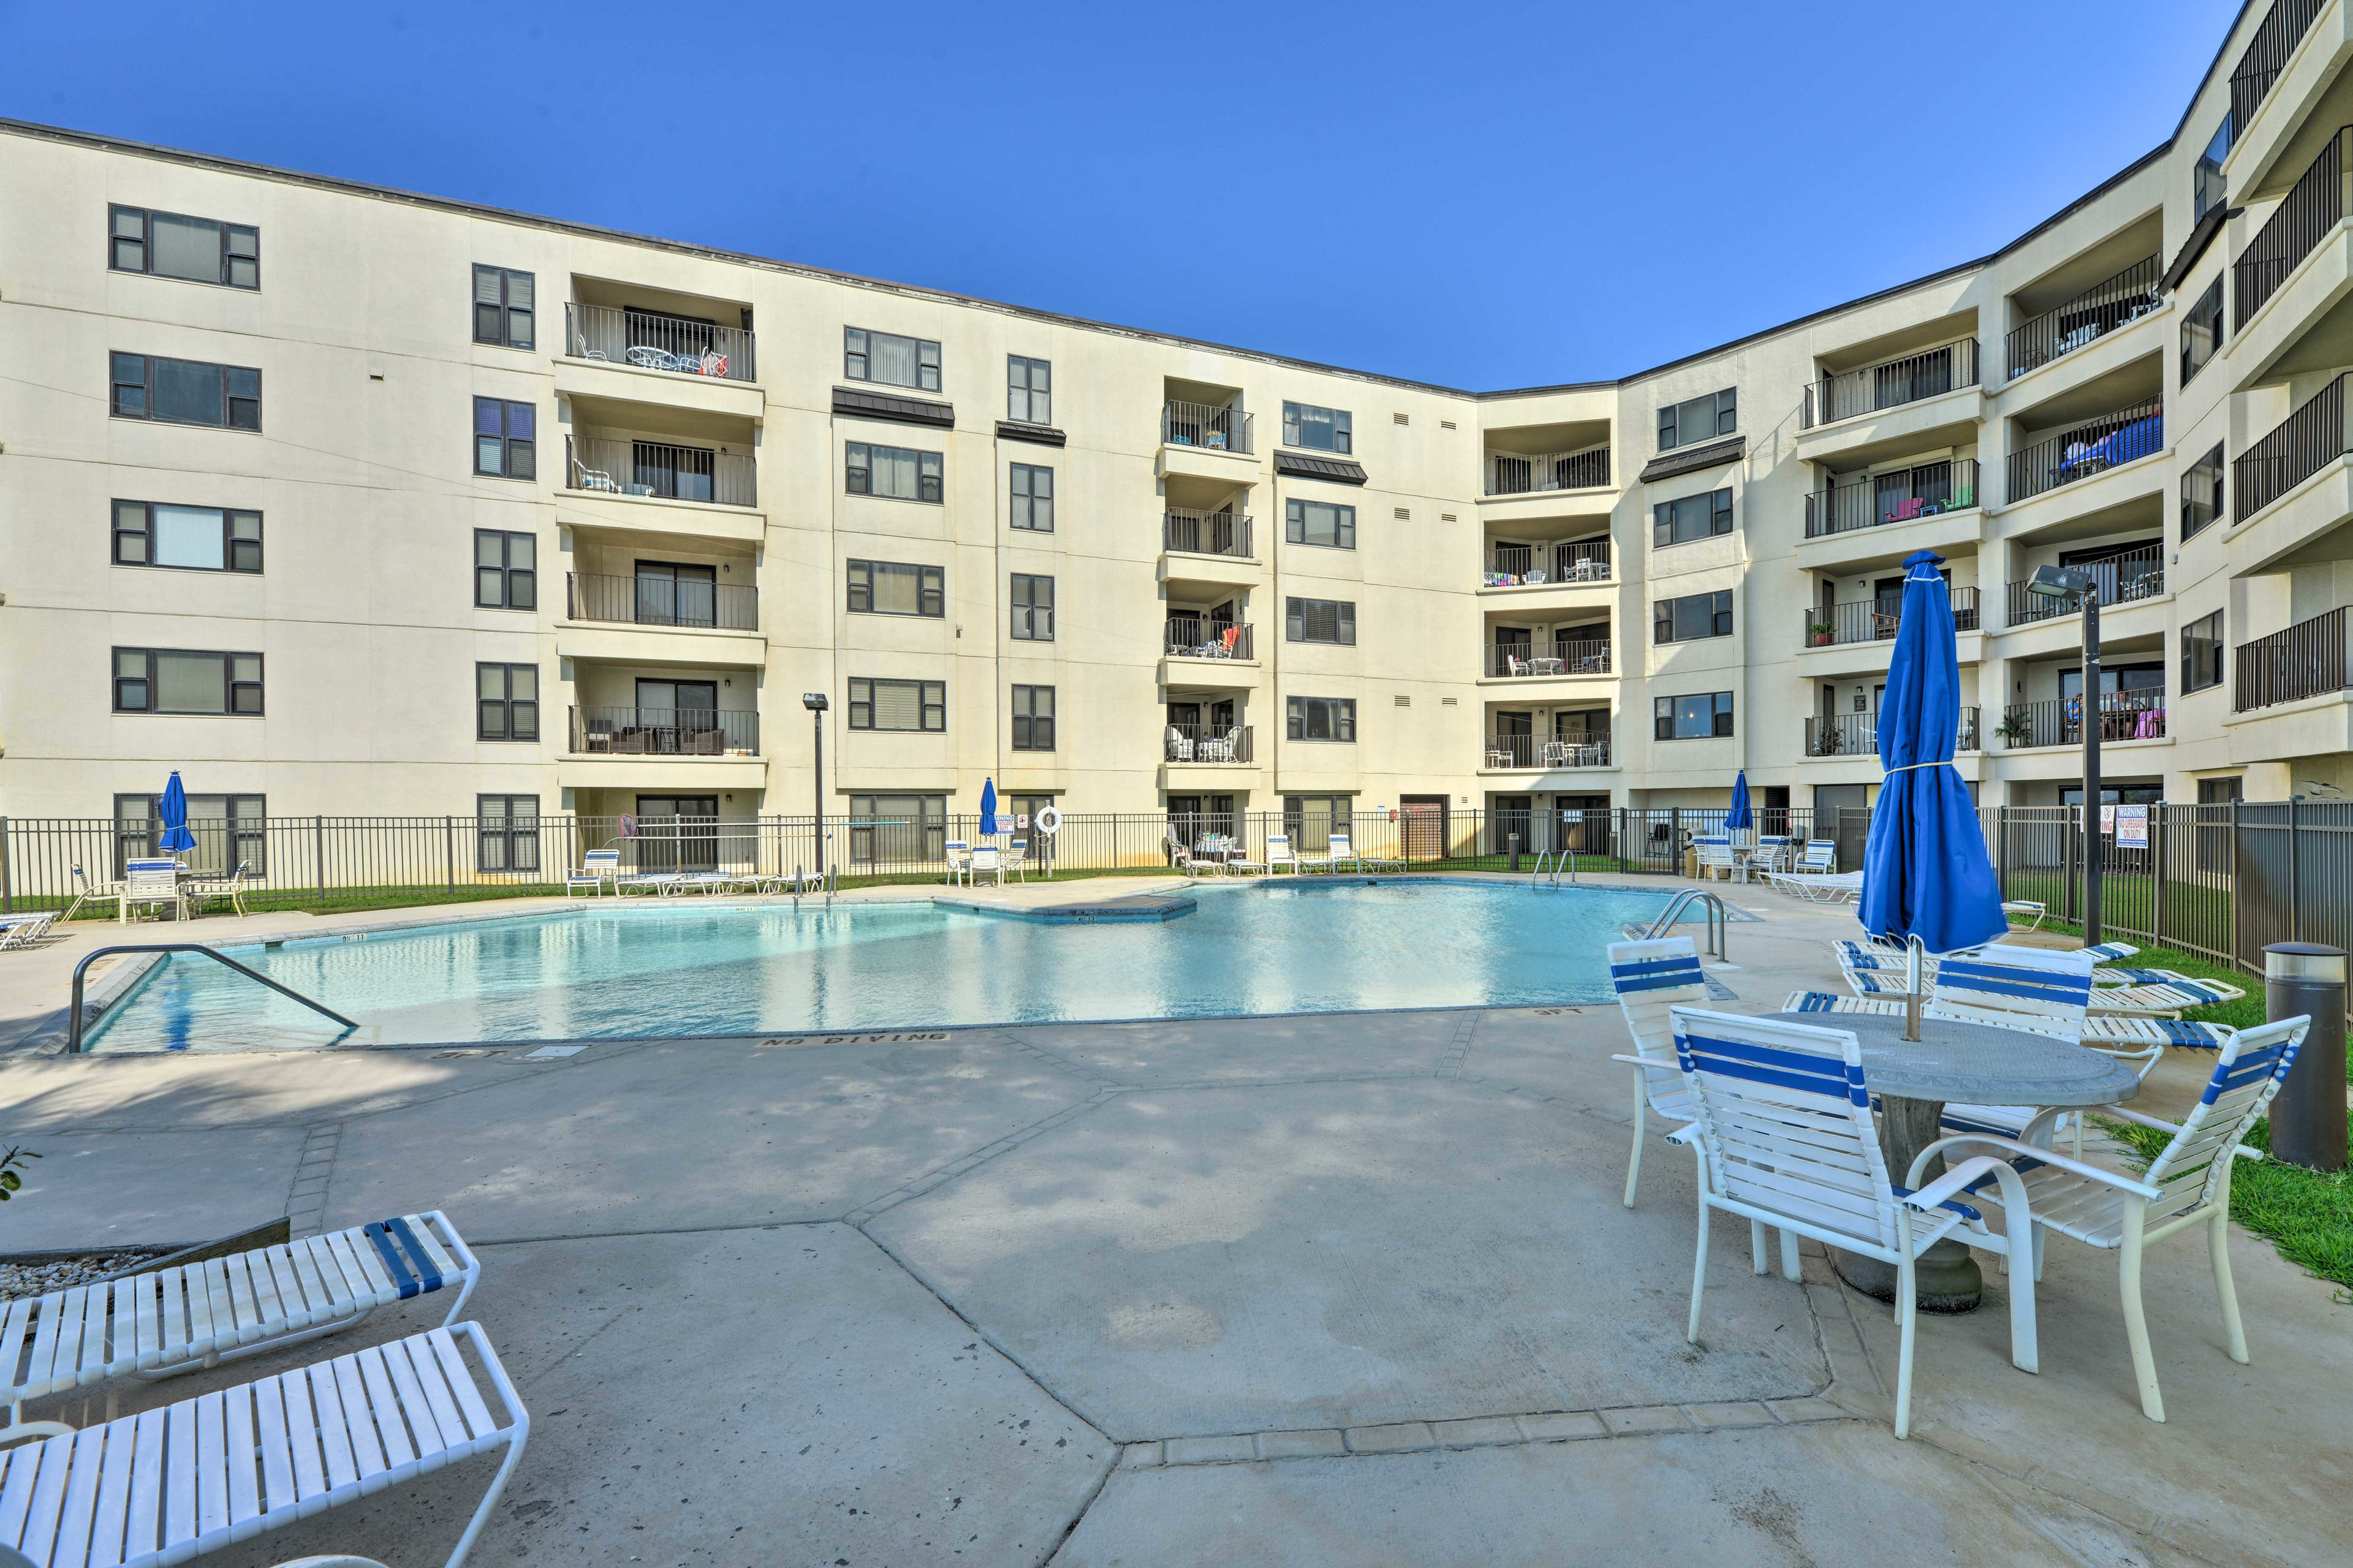 Bring a wine and cheese board down to enjoy poolside!